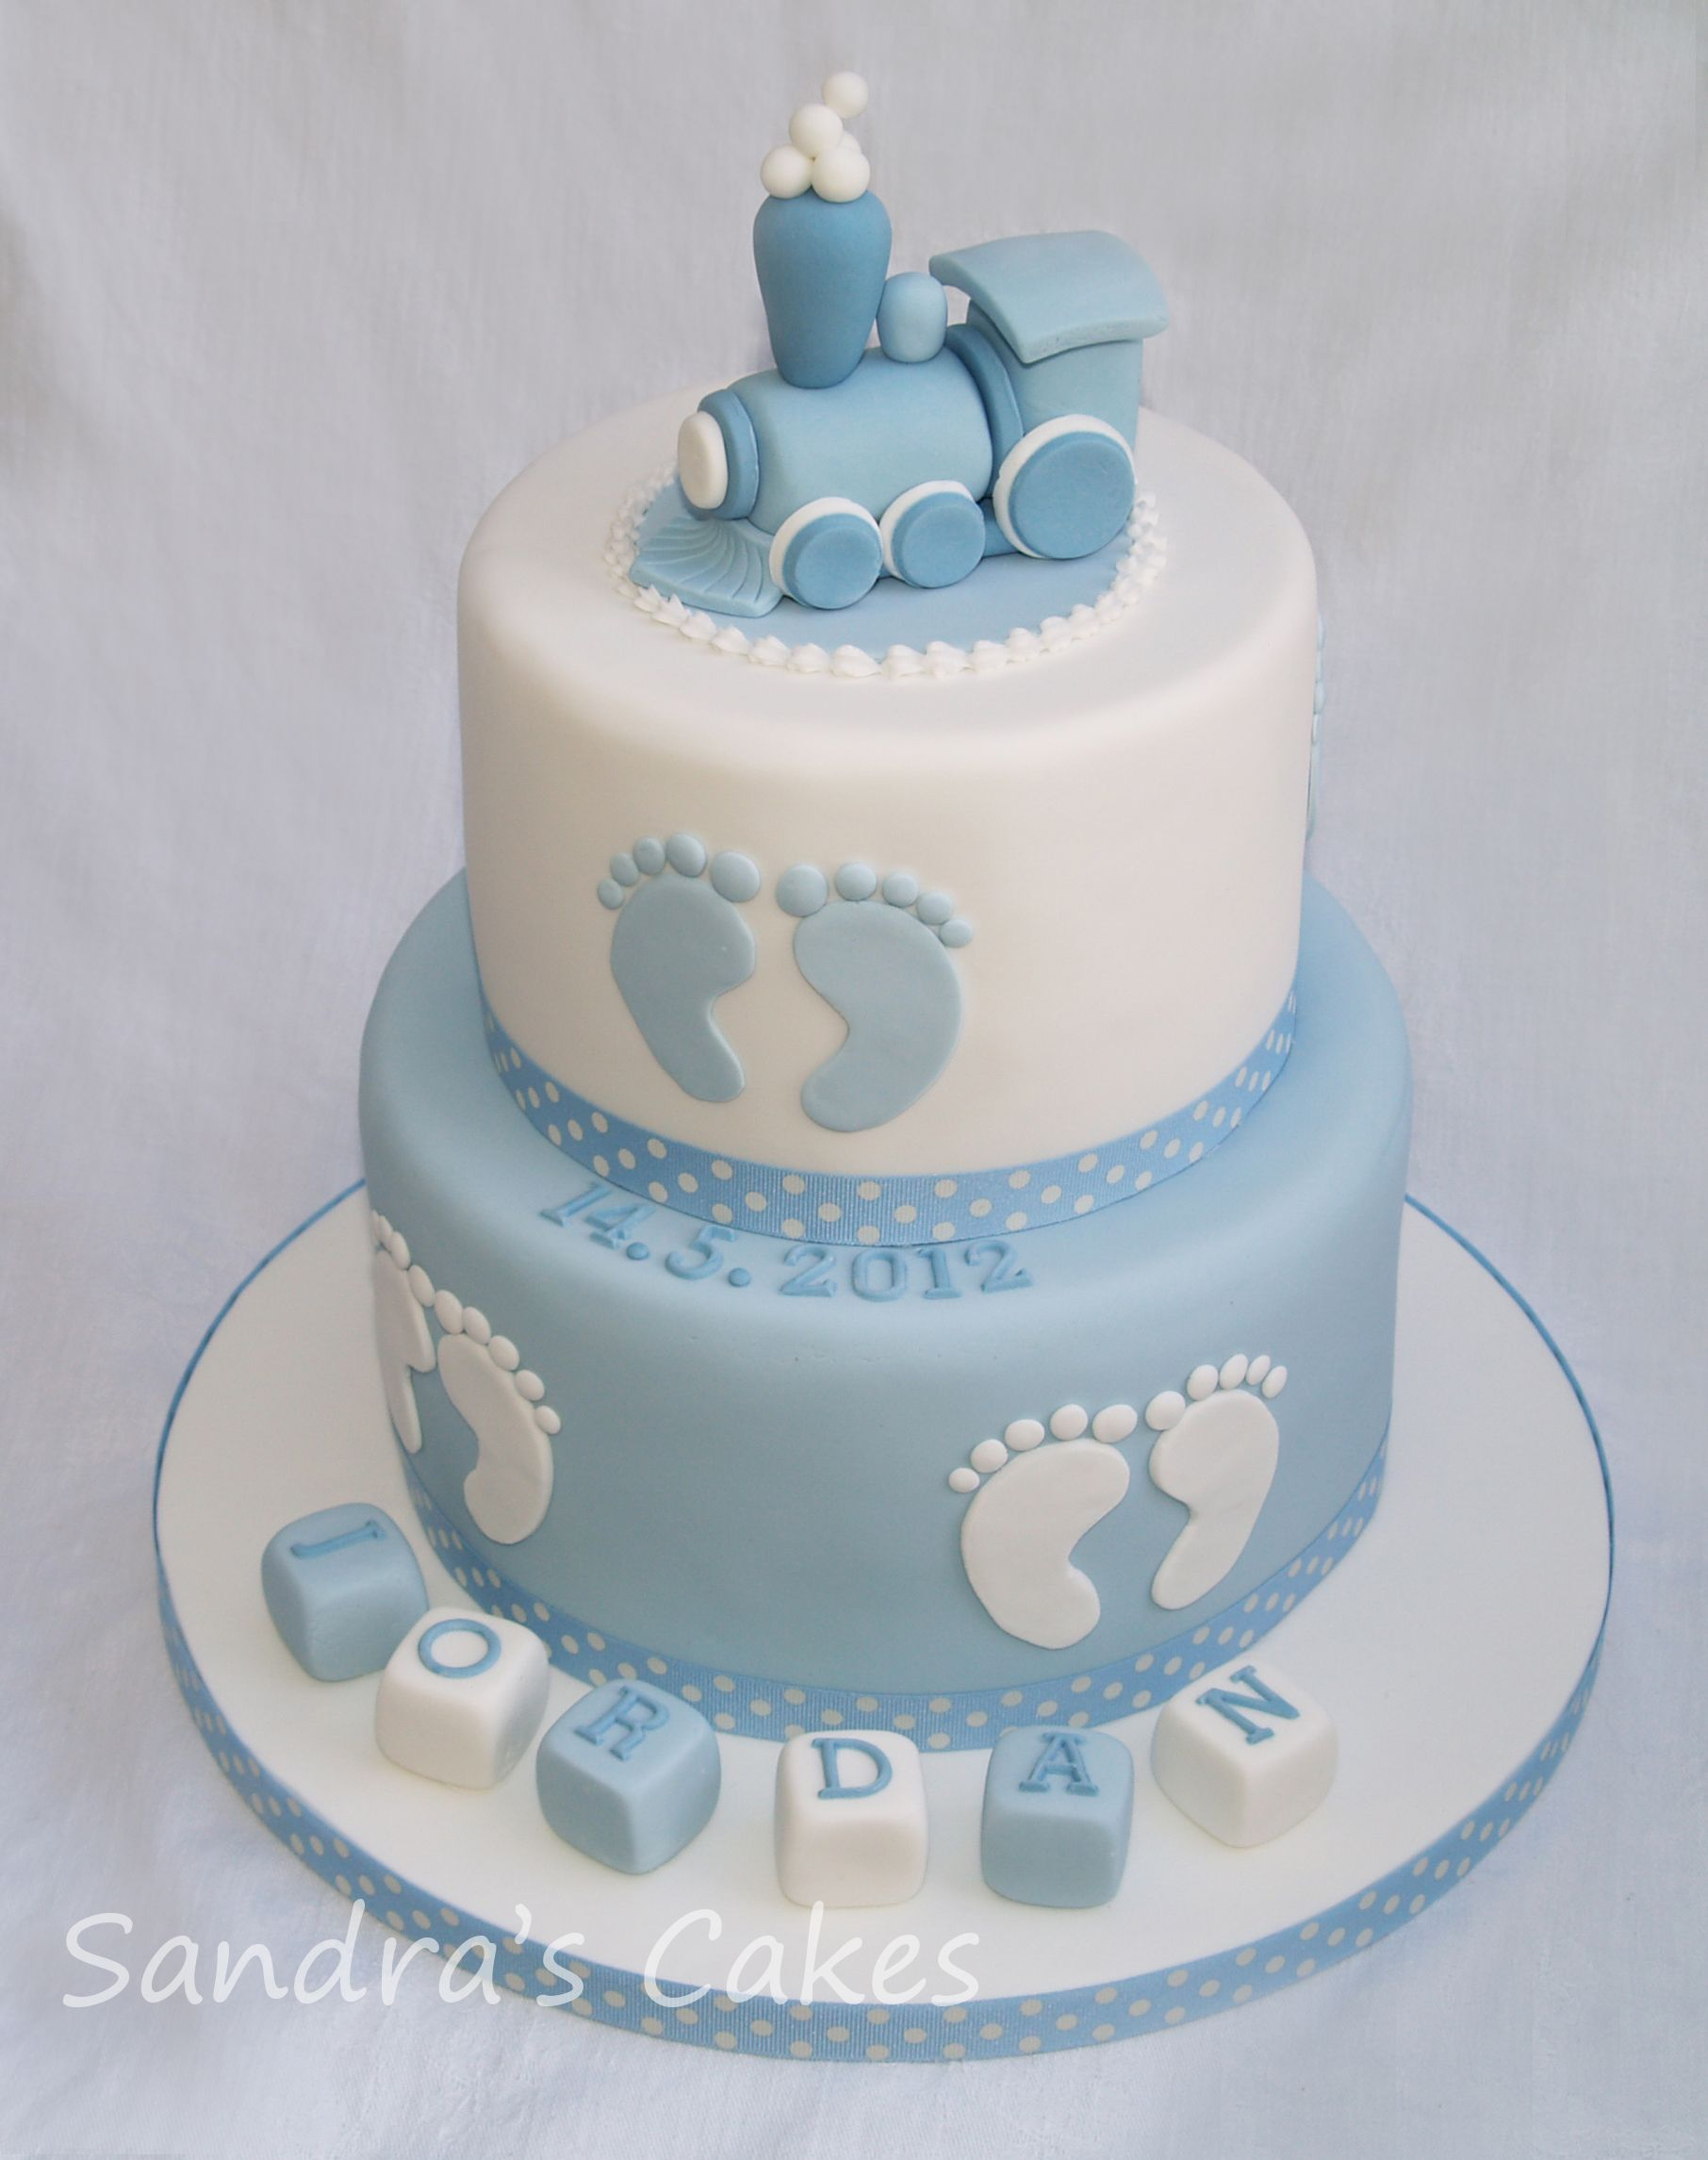 Christening Cake With Train Inspired By The Designer Cake